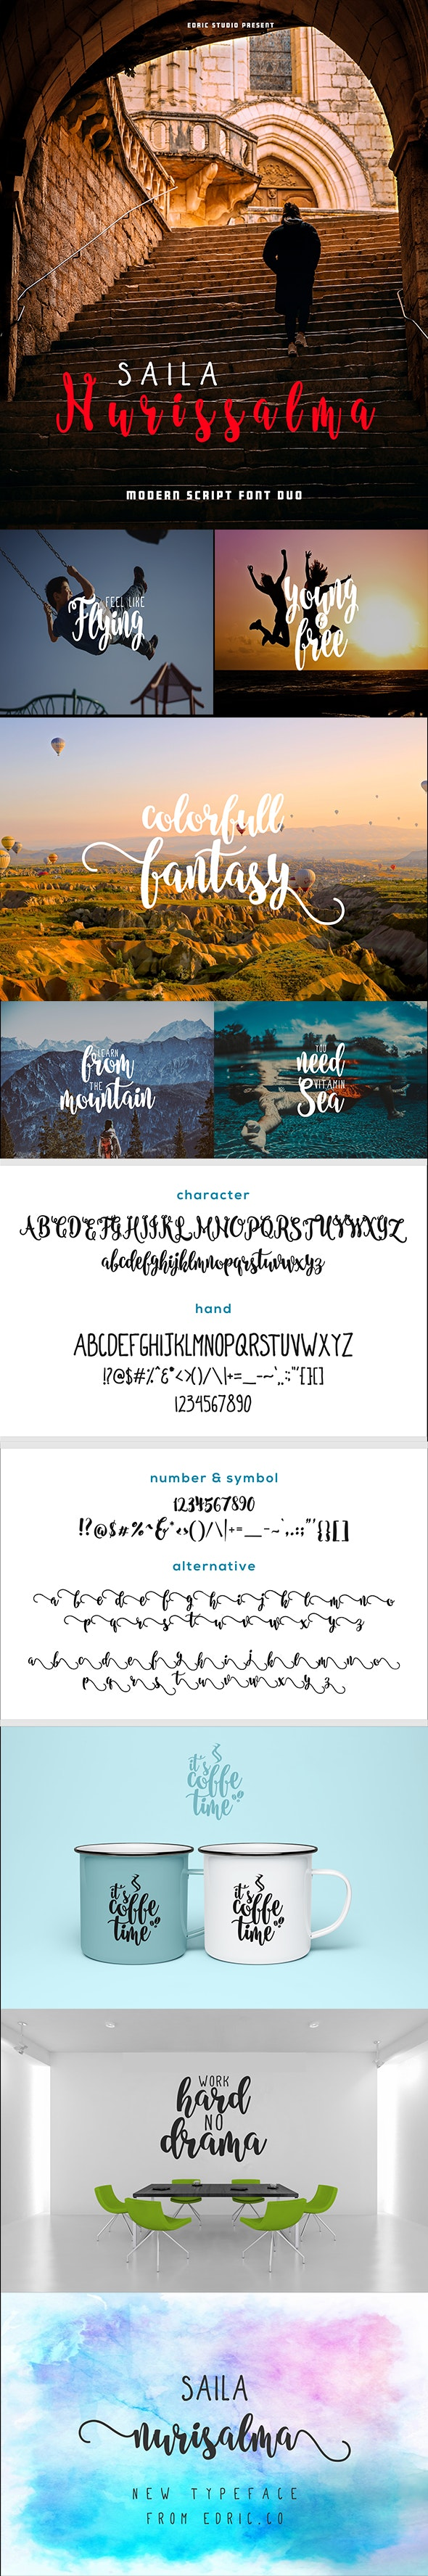 Saila Nurissalma - Two fonts with different styles - Hand-writing Script